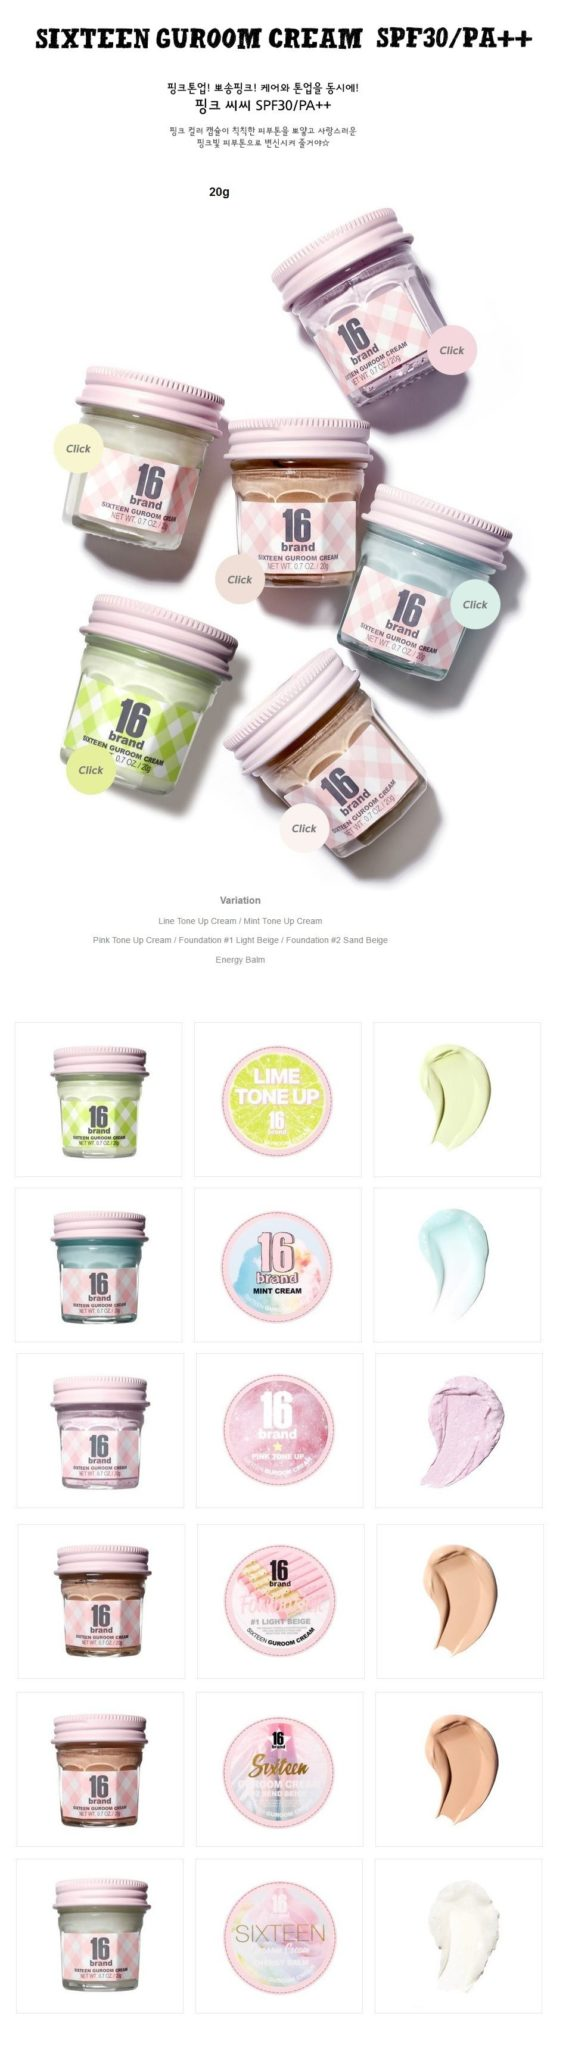 16 brand Sixteen Guroom Cream korean cosmetic skincare product online shop malaysia singapore india1